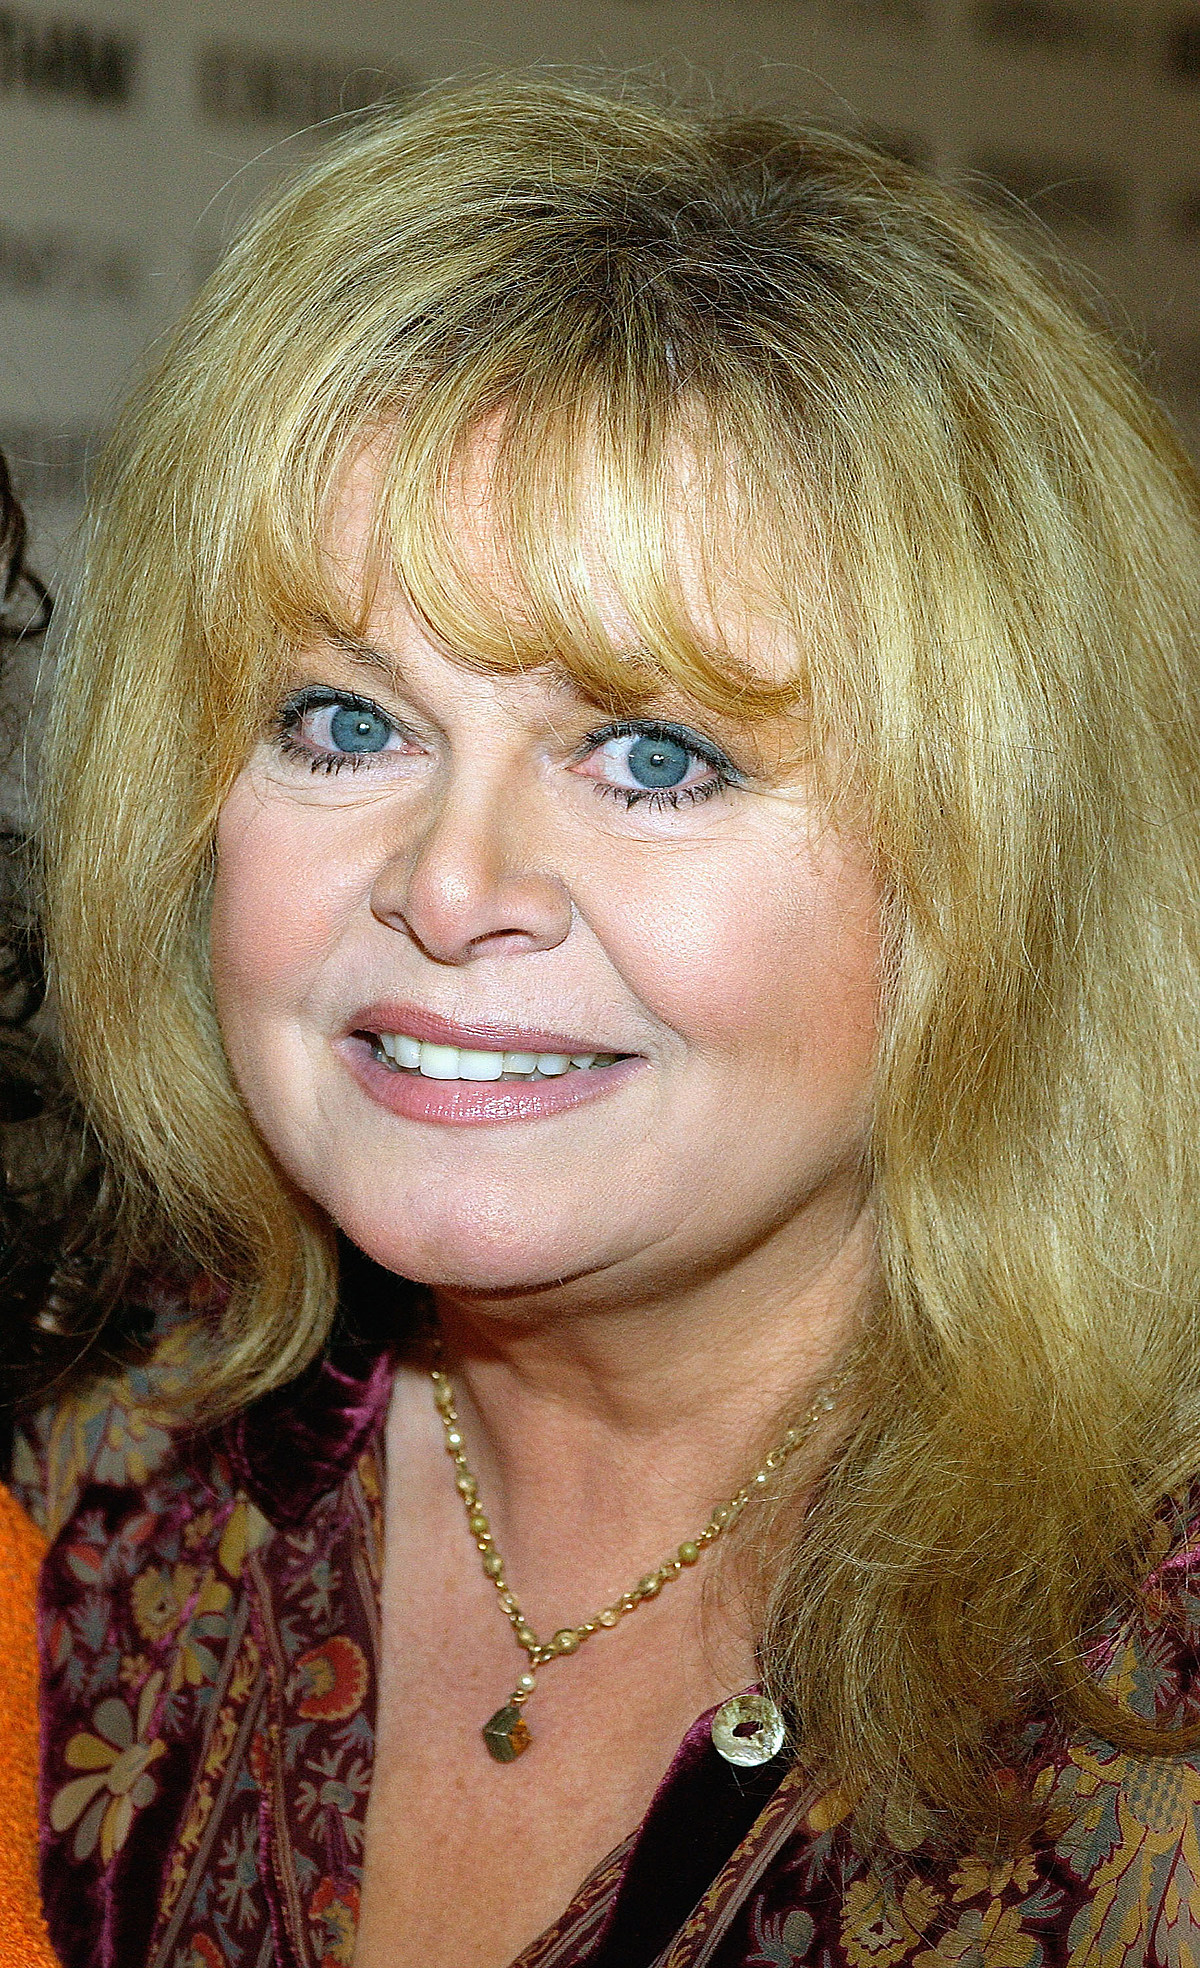 Sally Struthers arrested, keeps on working 9 to 5